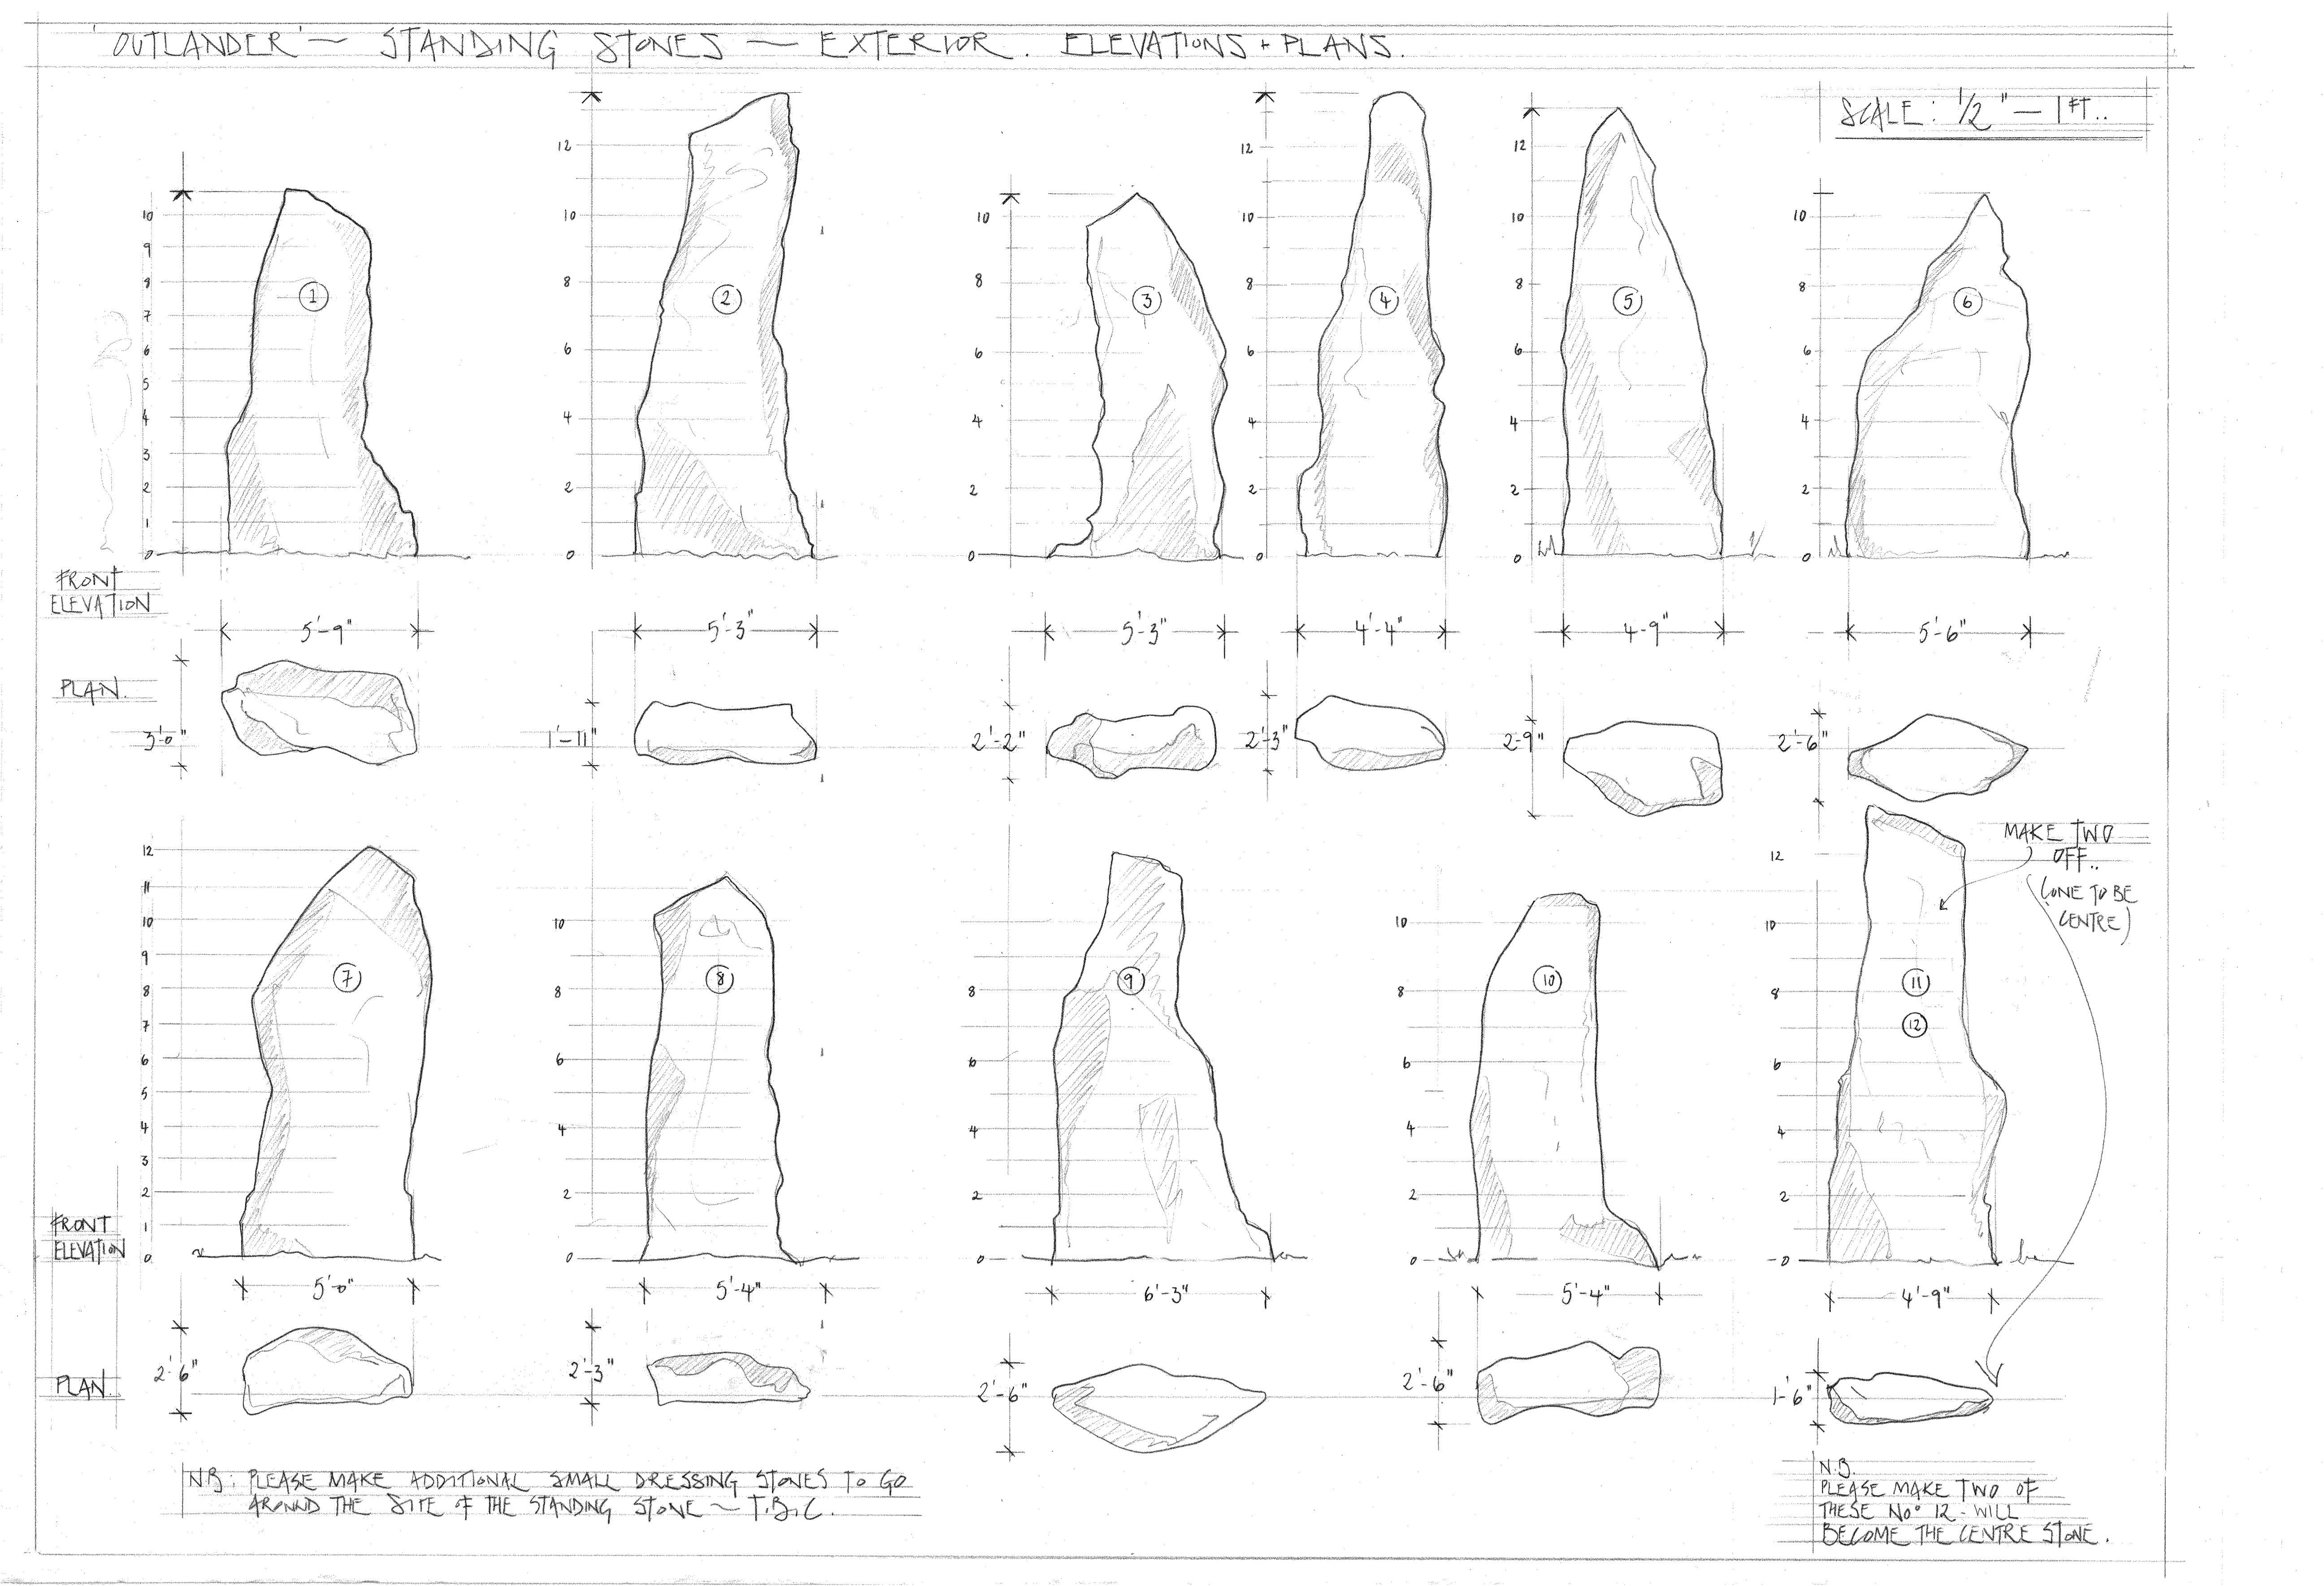 Here are the blueprints of Craigh na Dun, courtesy of